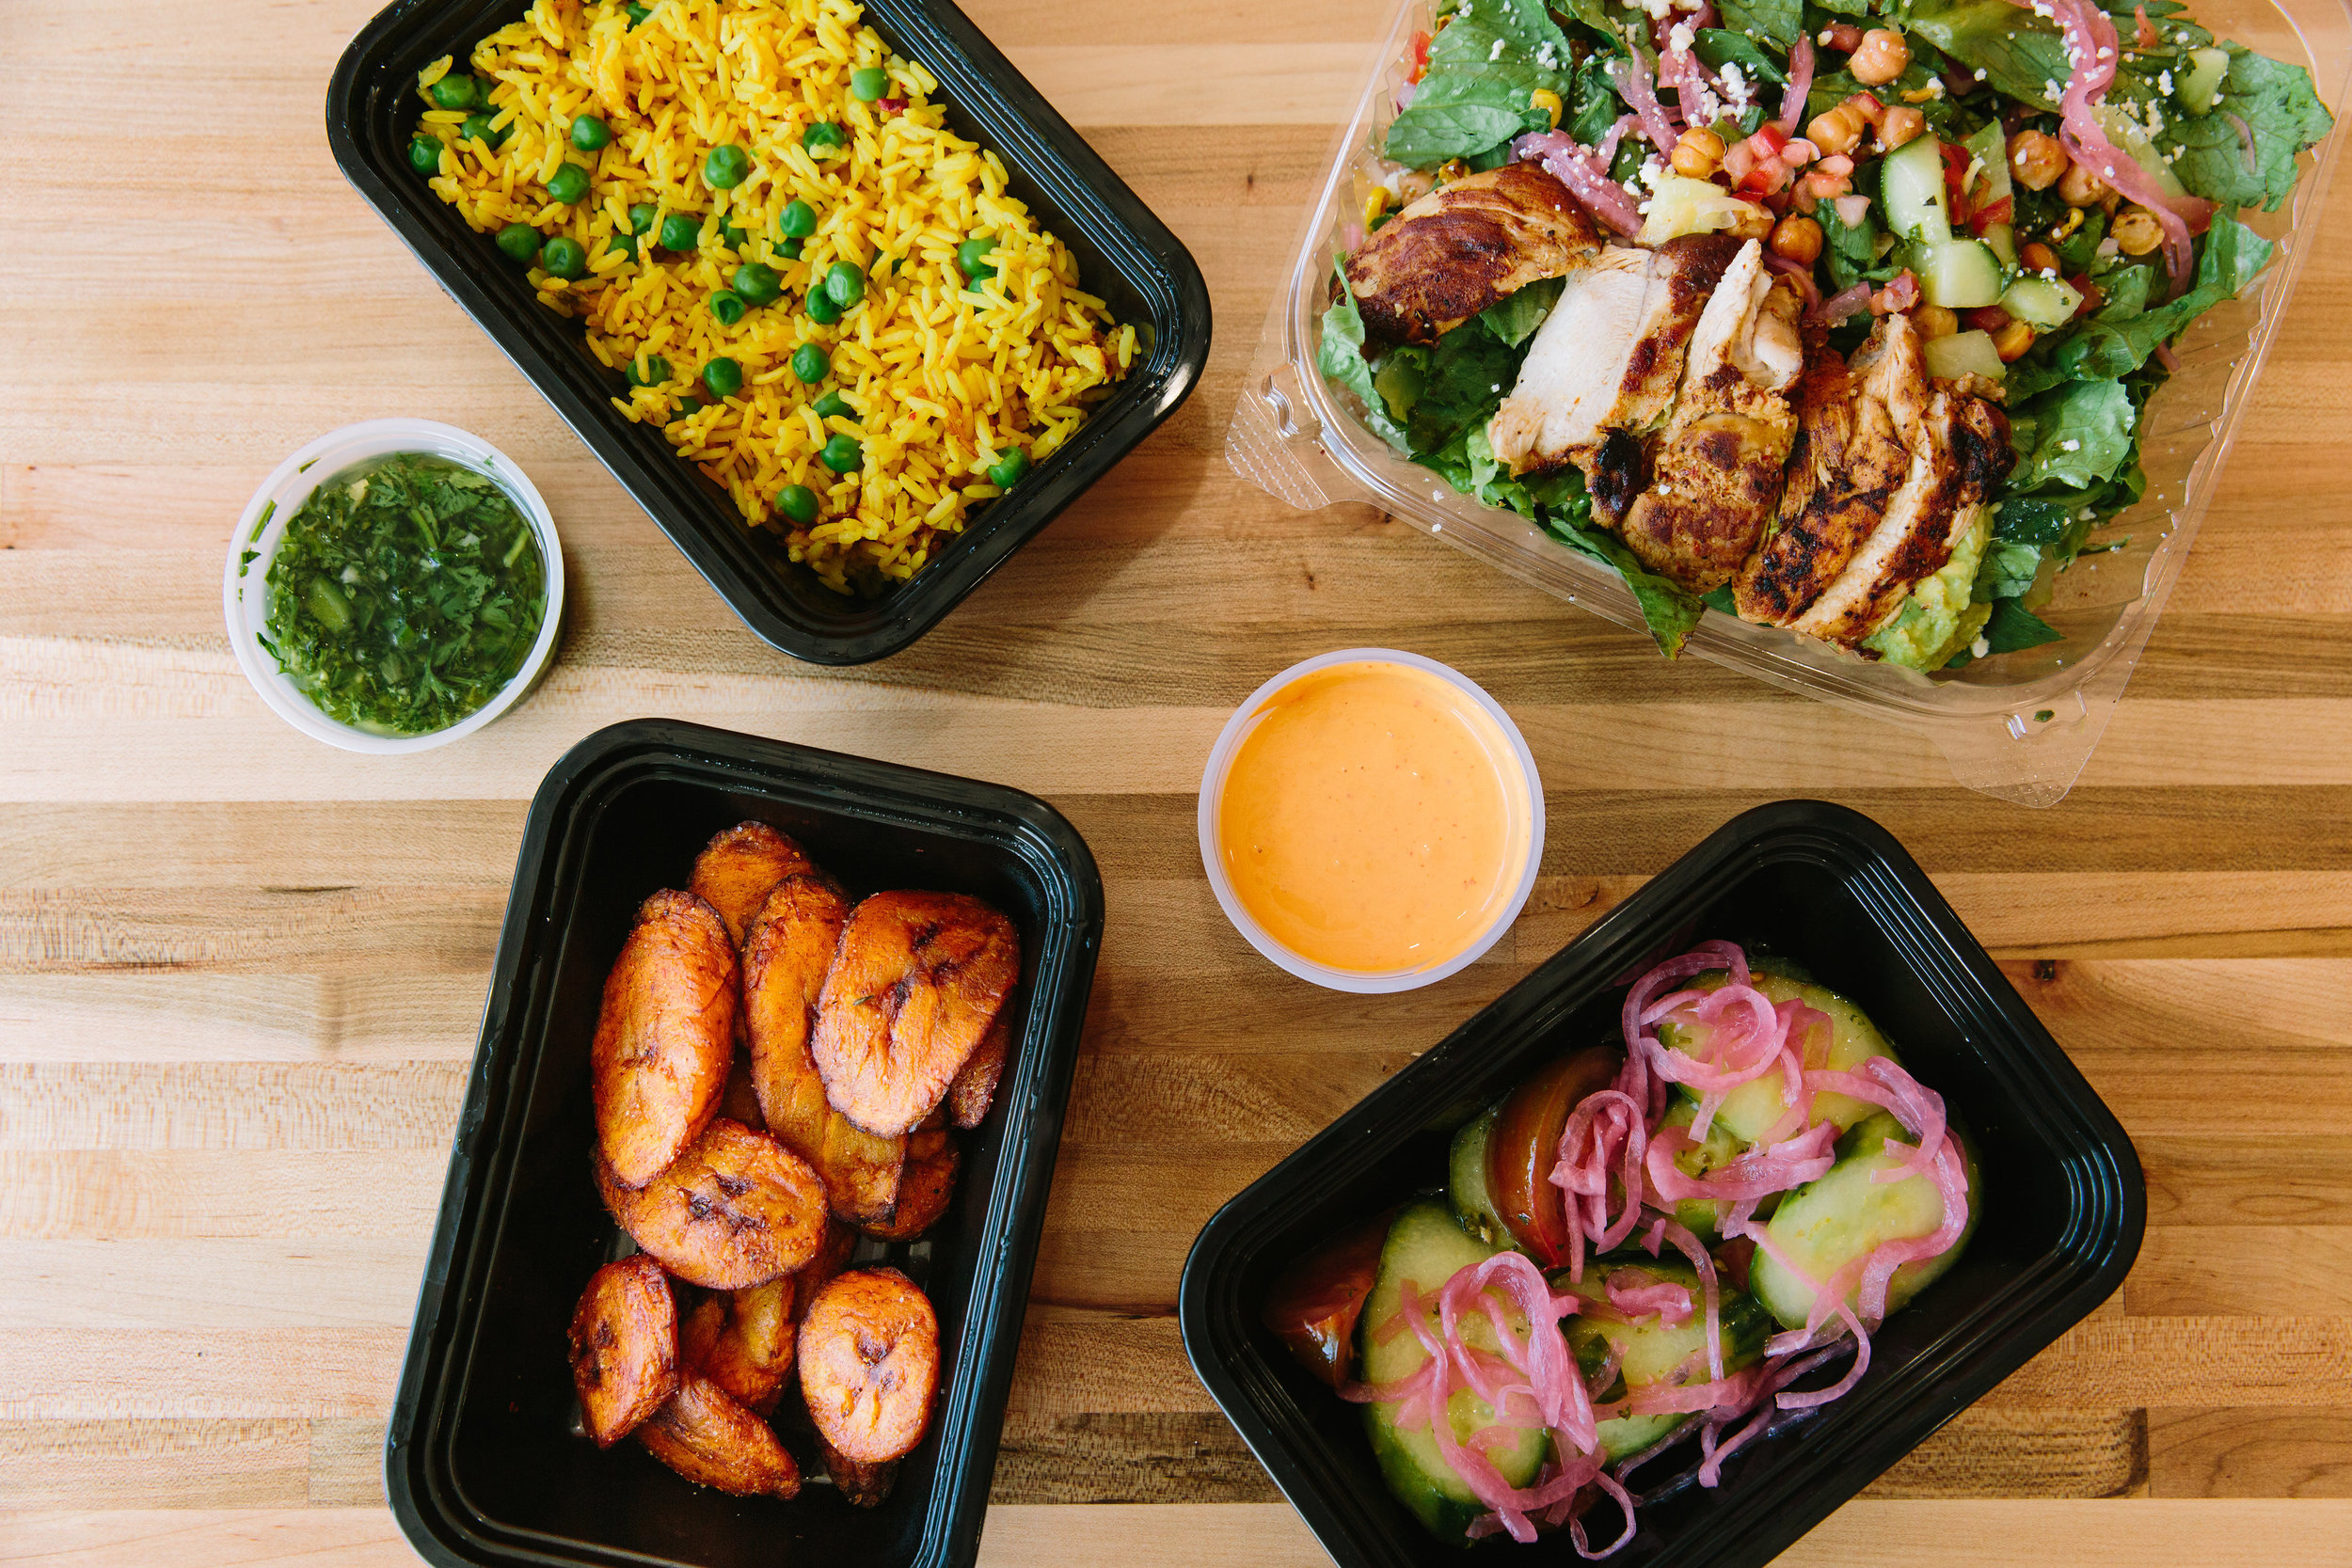 Mercado Food Truck Opens El Pollo Guapo In Wethersfield CT Eats Out by Allegra Anderson Photography